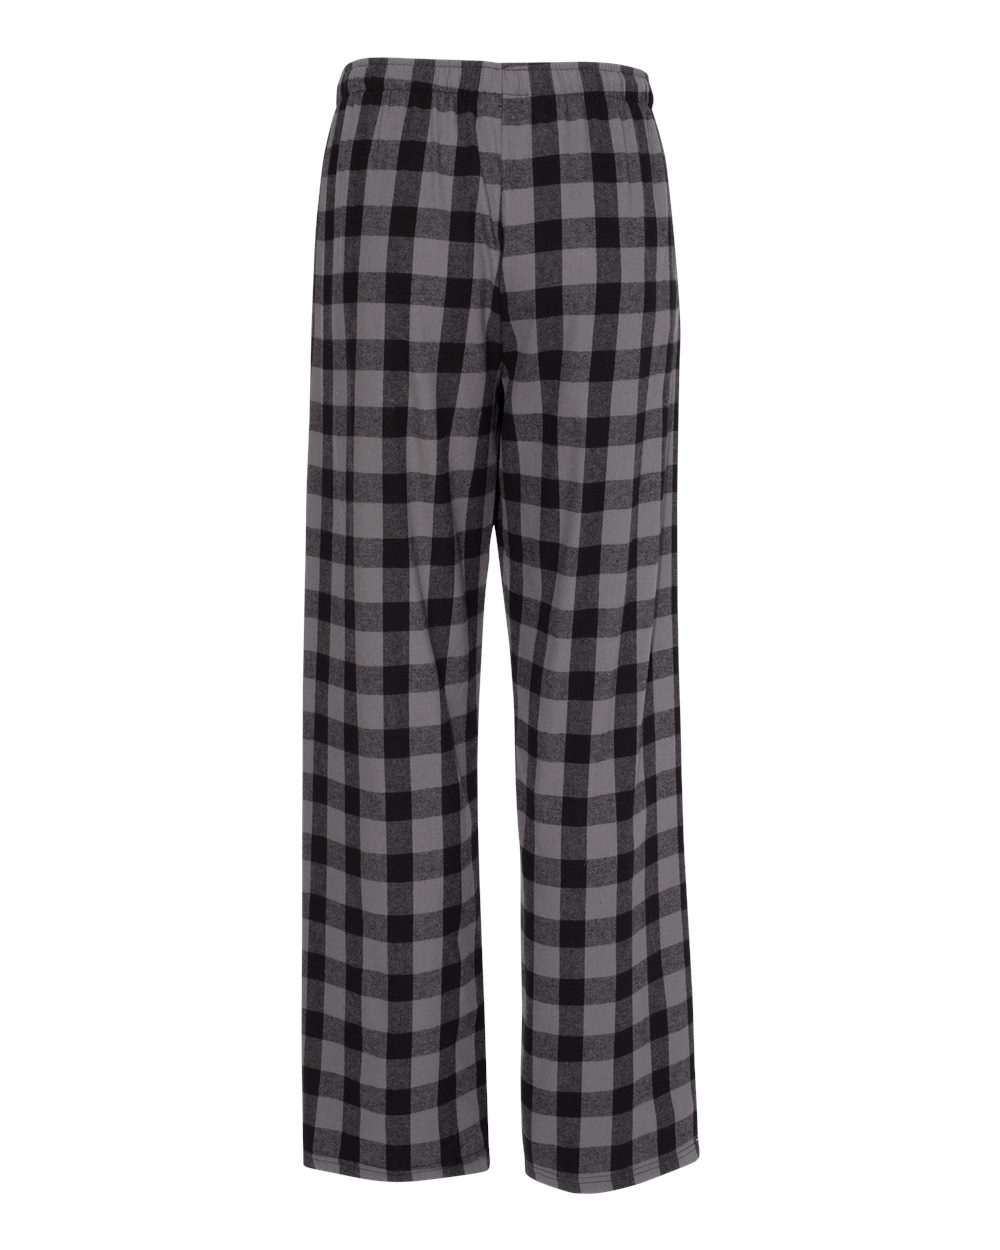 Boxercraft-Unisex-Flannel-Pants-With-Pockets-Pajama-Pants-F20-up-to-2XL thumbnail 13